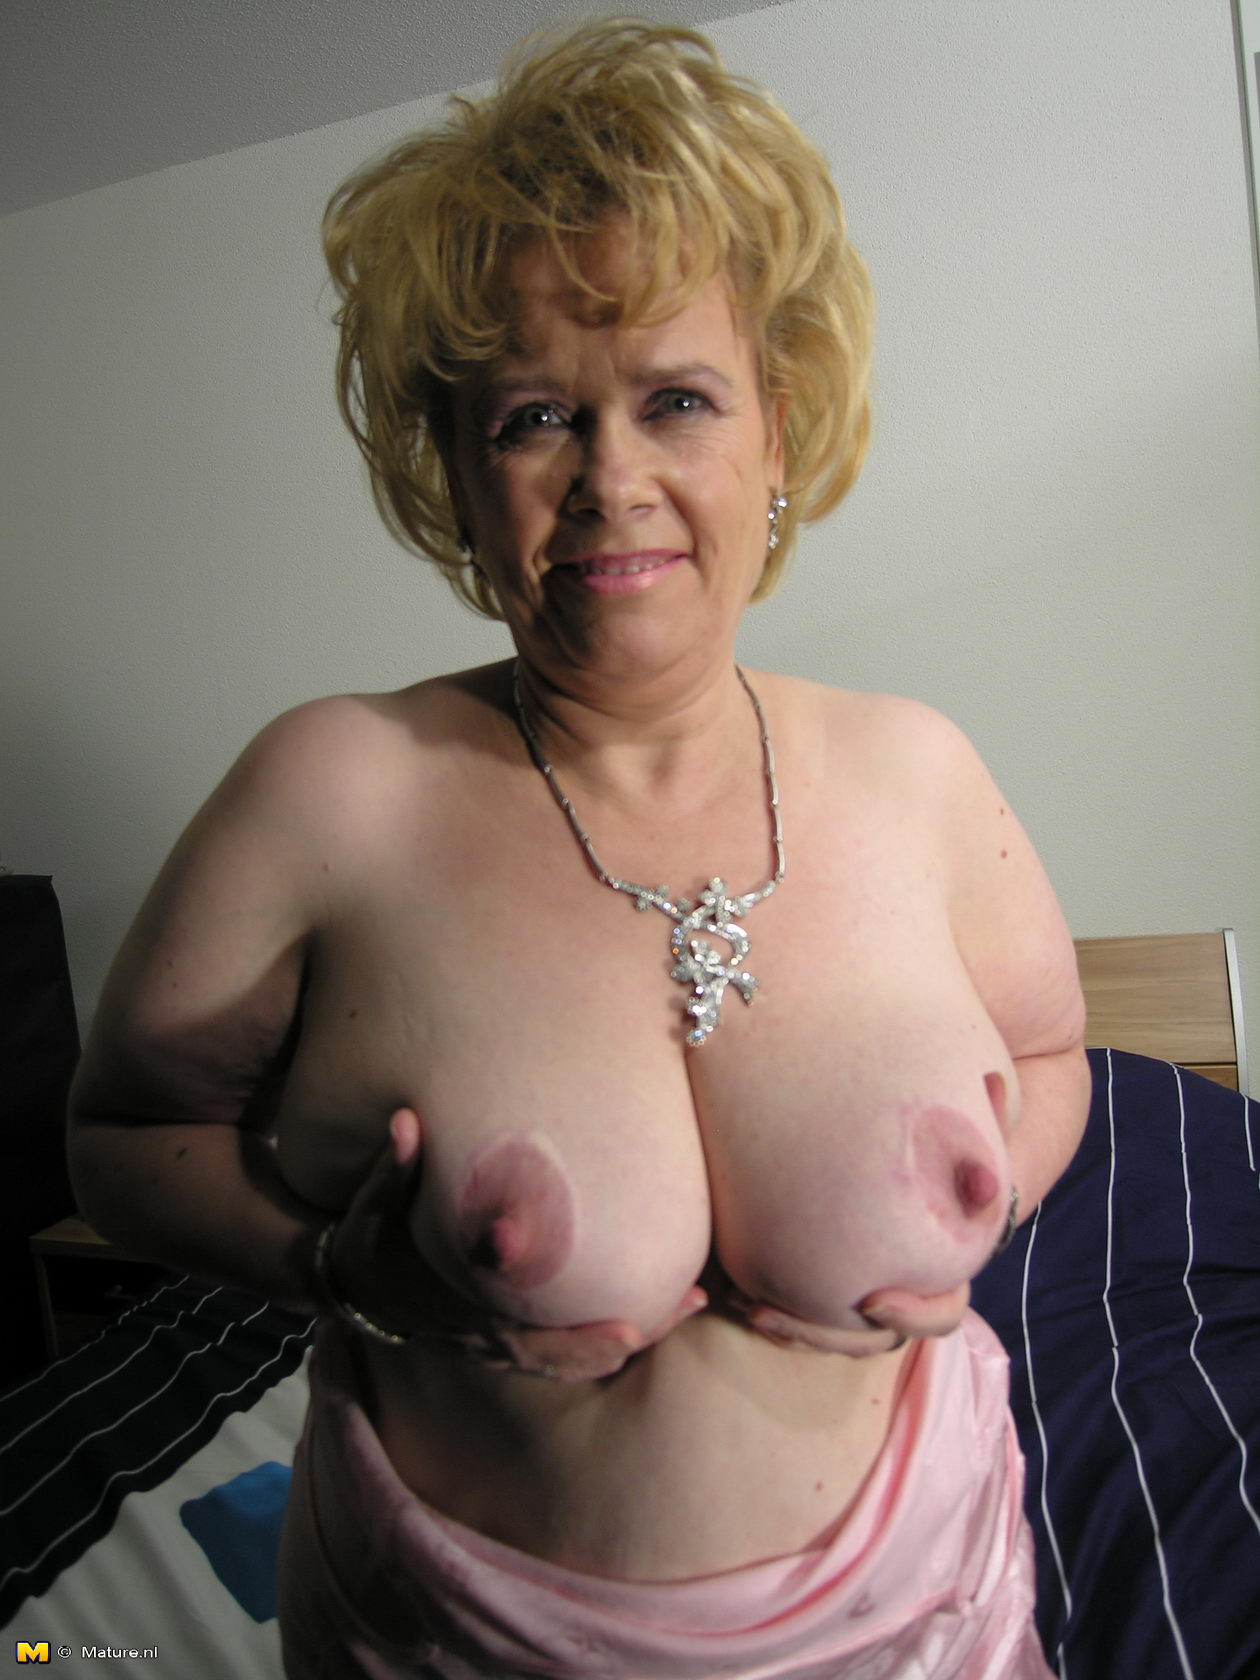 Nude mature women nipples sorry, not